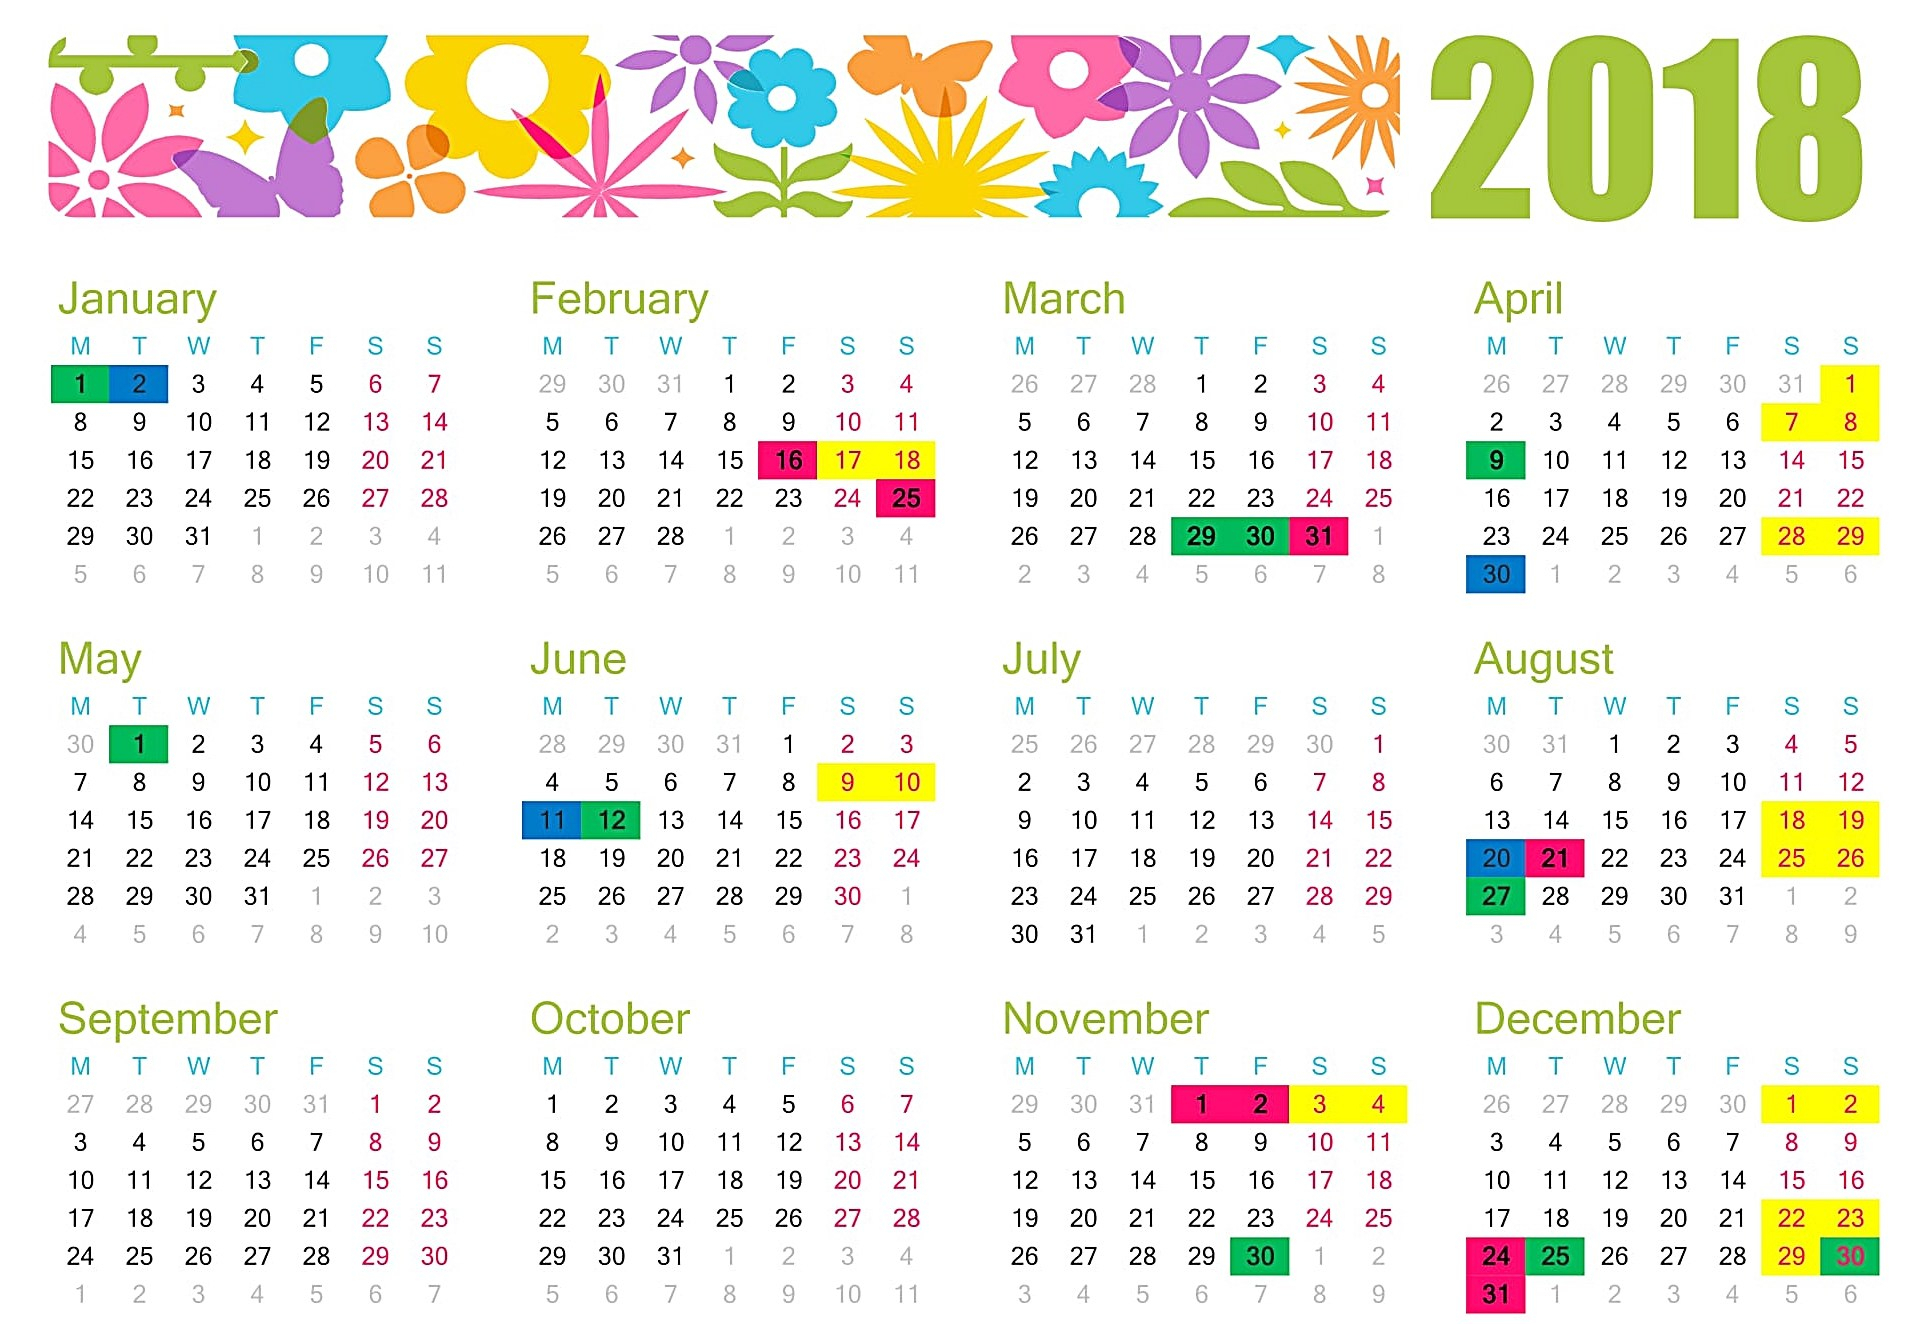 November 2018 Holidays Philippines - Free August 2019 Calendar with Printable Template For Philippine Calendar